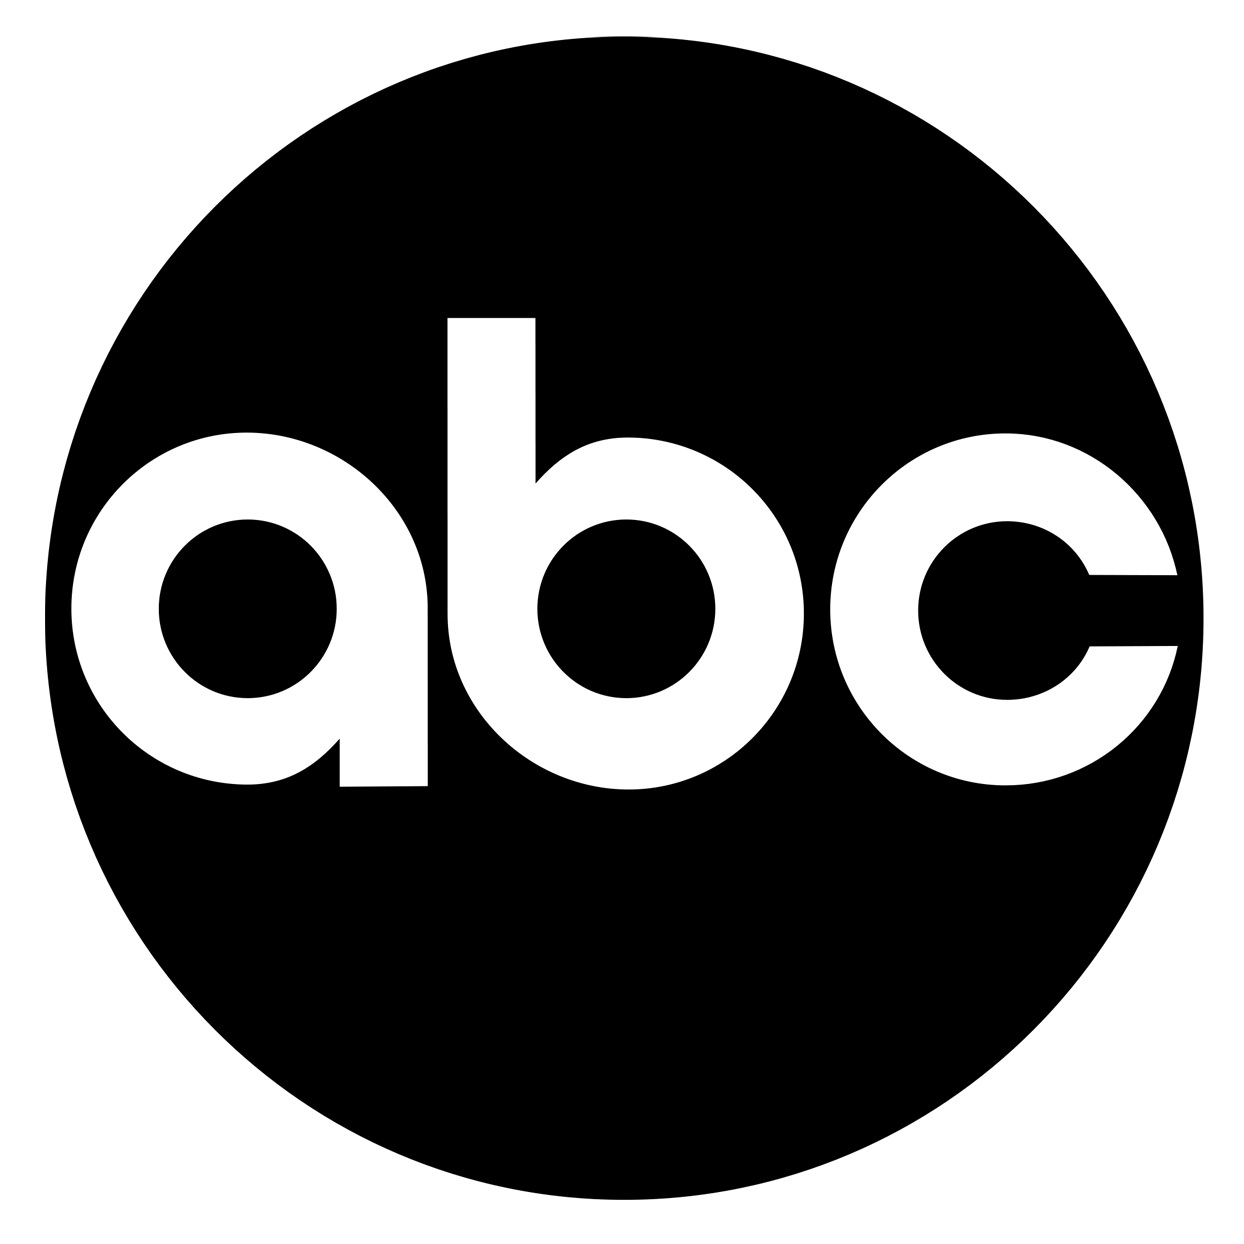 abc-logo-1962-by-Paul-Rand.png